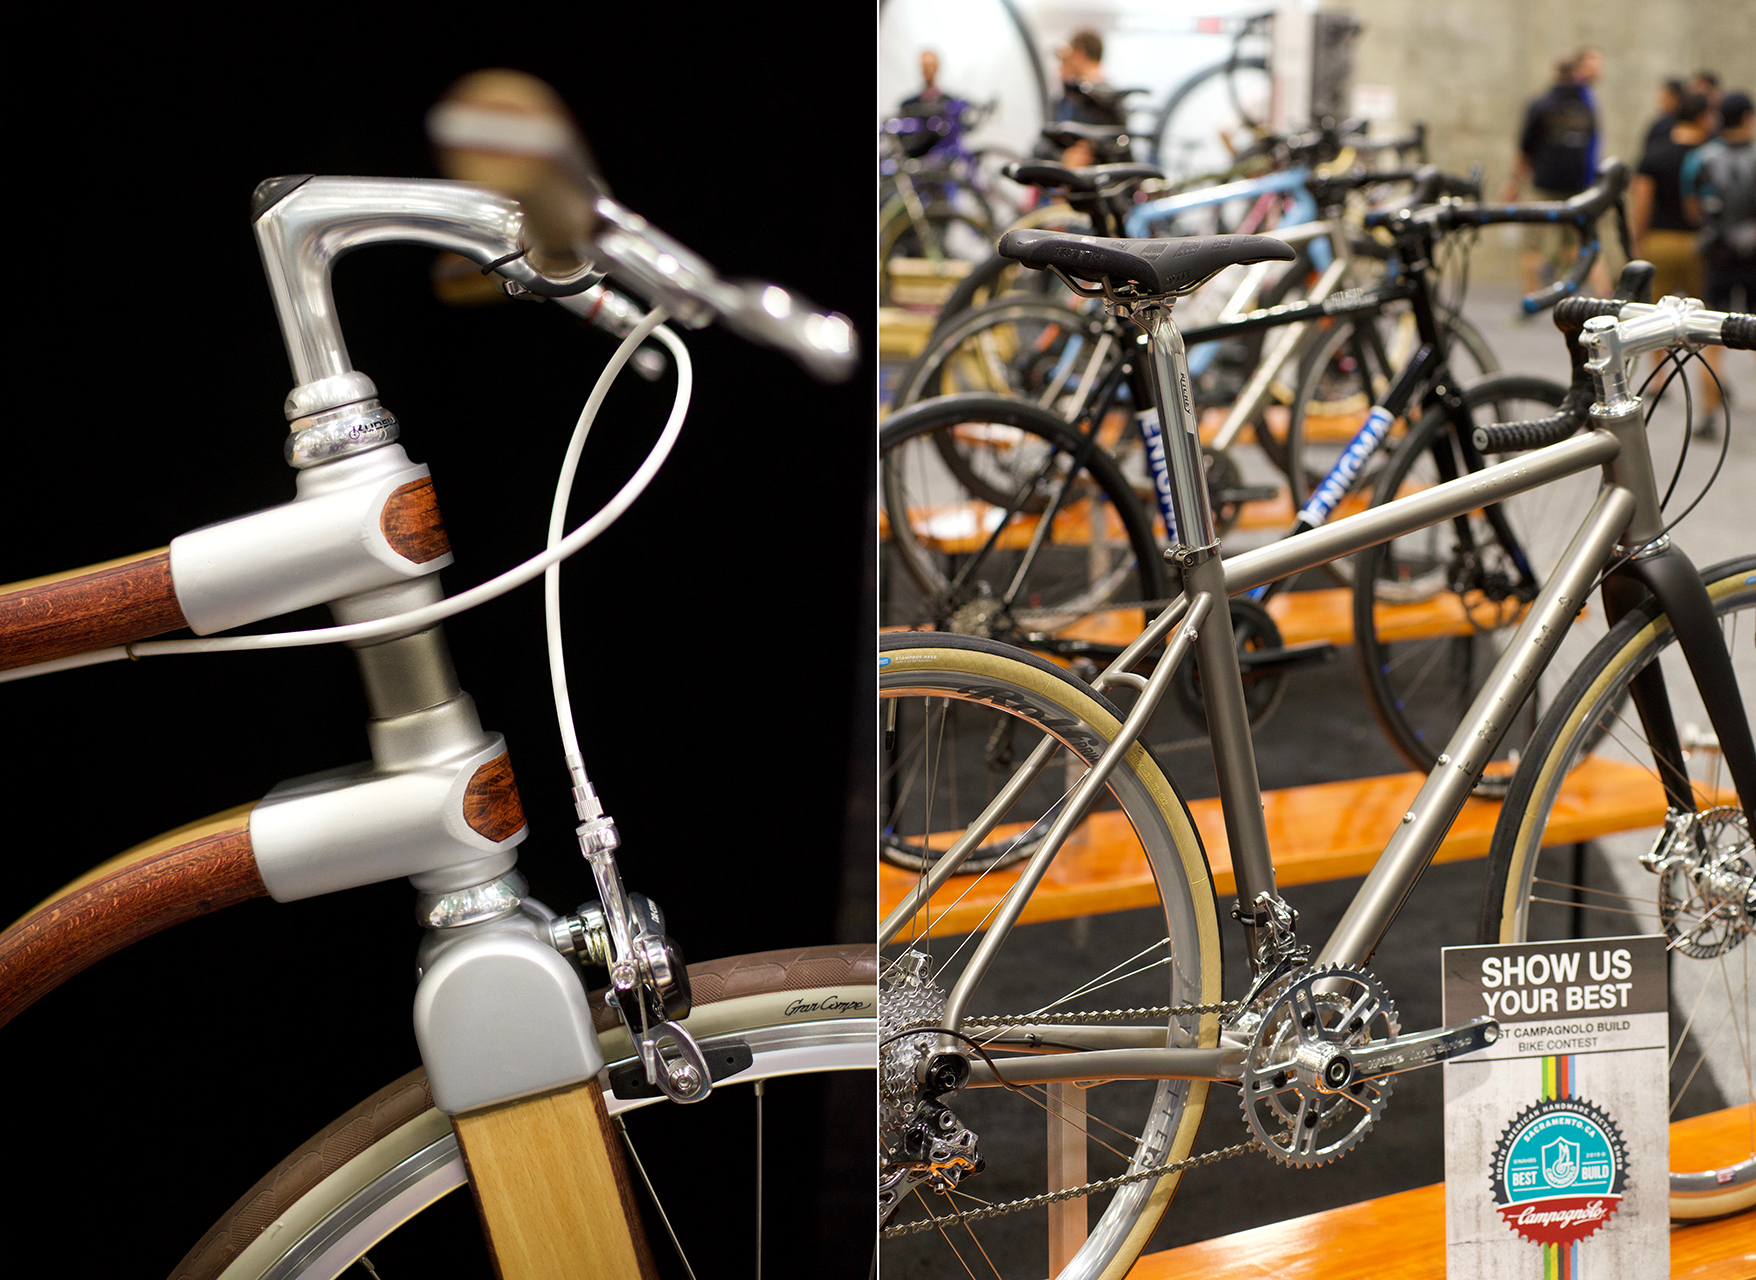 The stunning wooden bike from Atelier Kinopio juxtaposed with a lineup of more traditional builds entered in the Campagnolo Build contest held for bikes made using components from the legendary Italian maker.